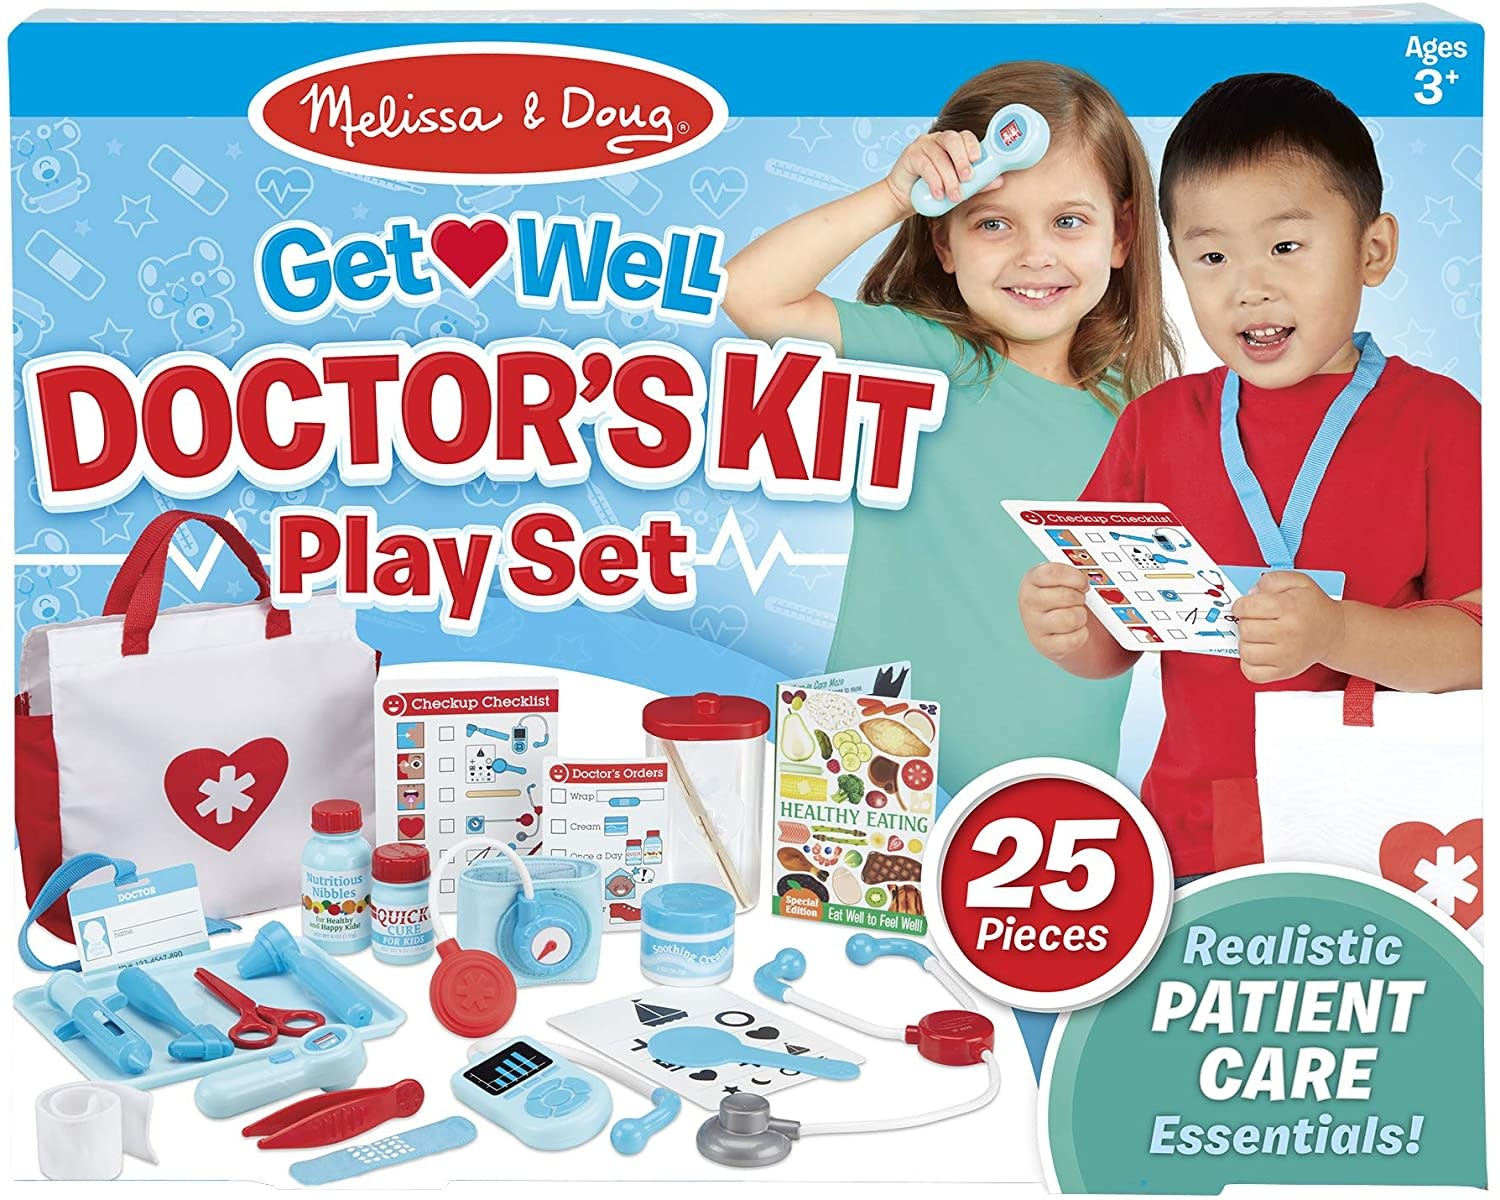 Get Well Doctor's Kit Playset MD-1